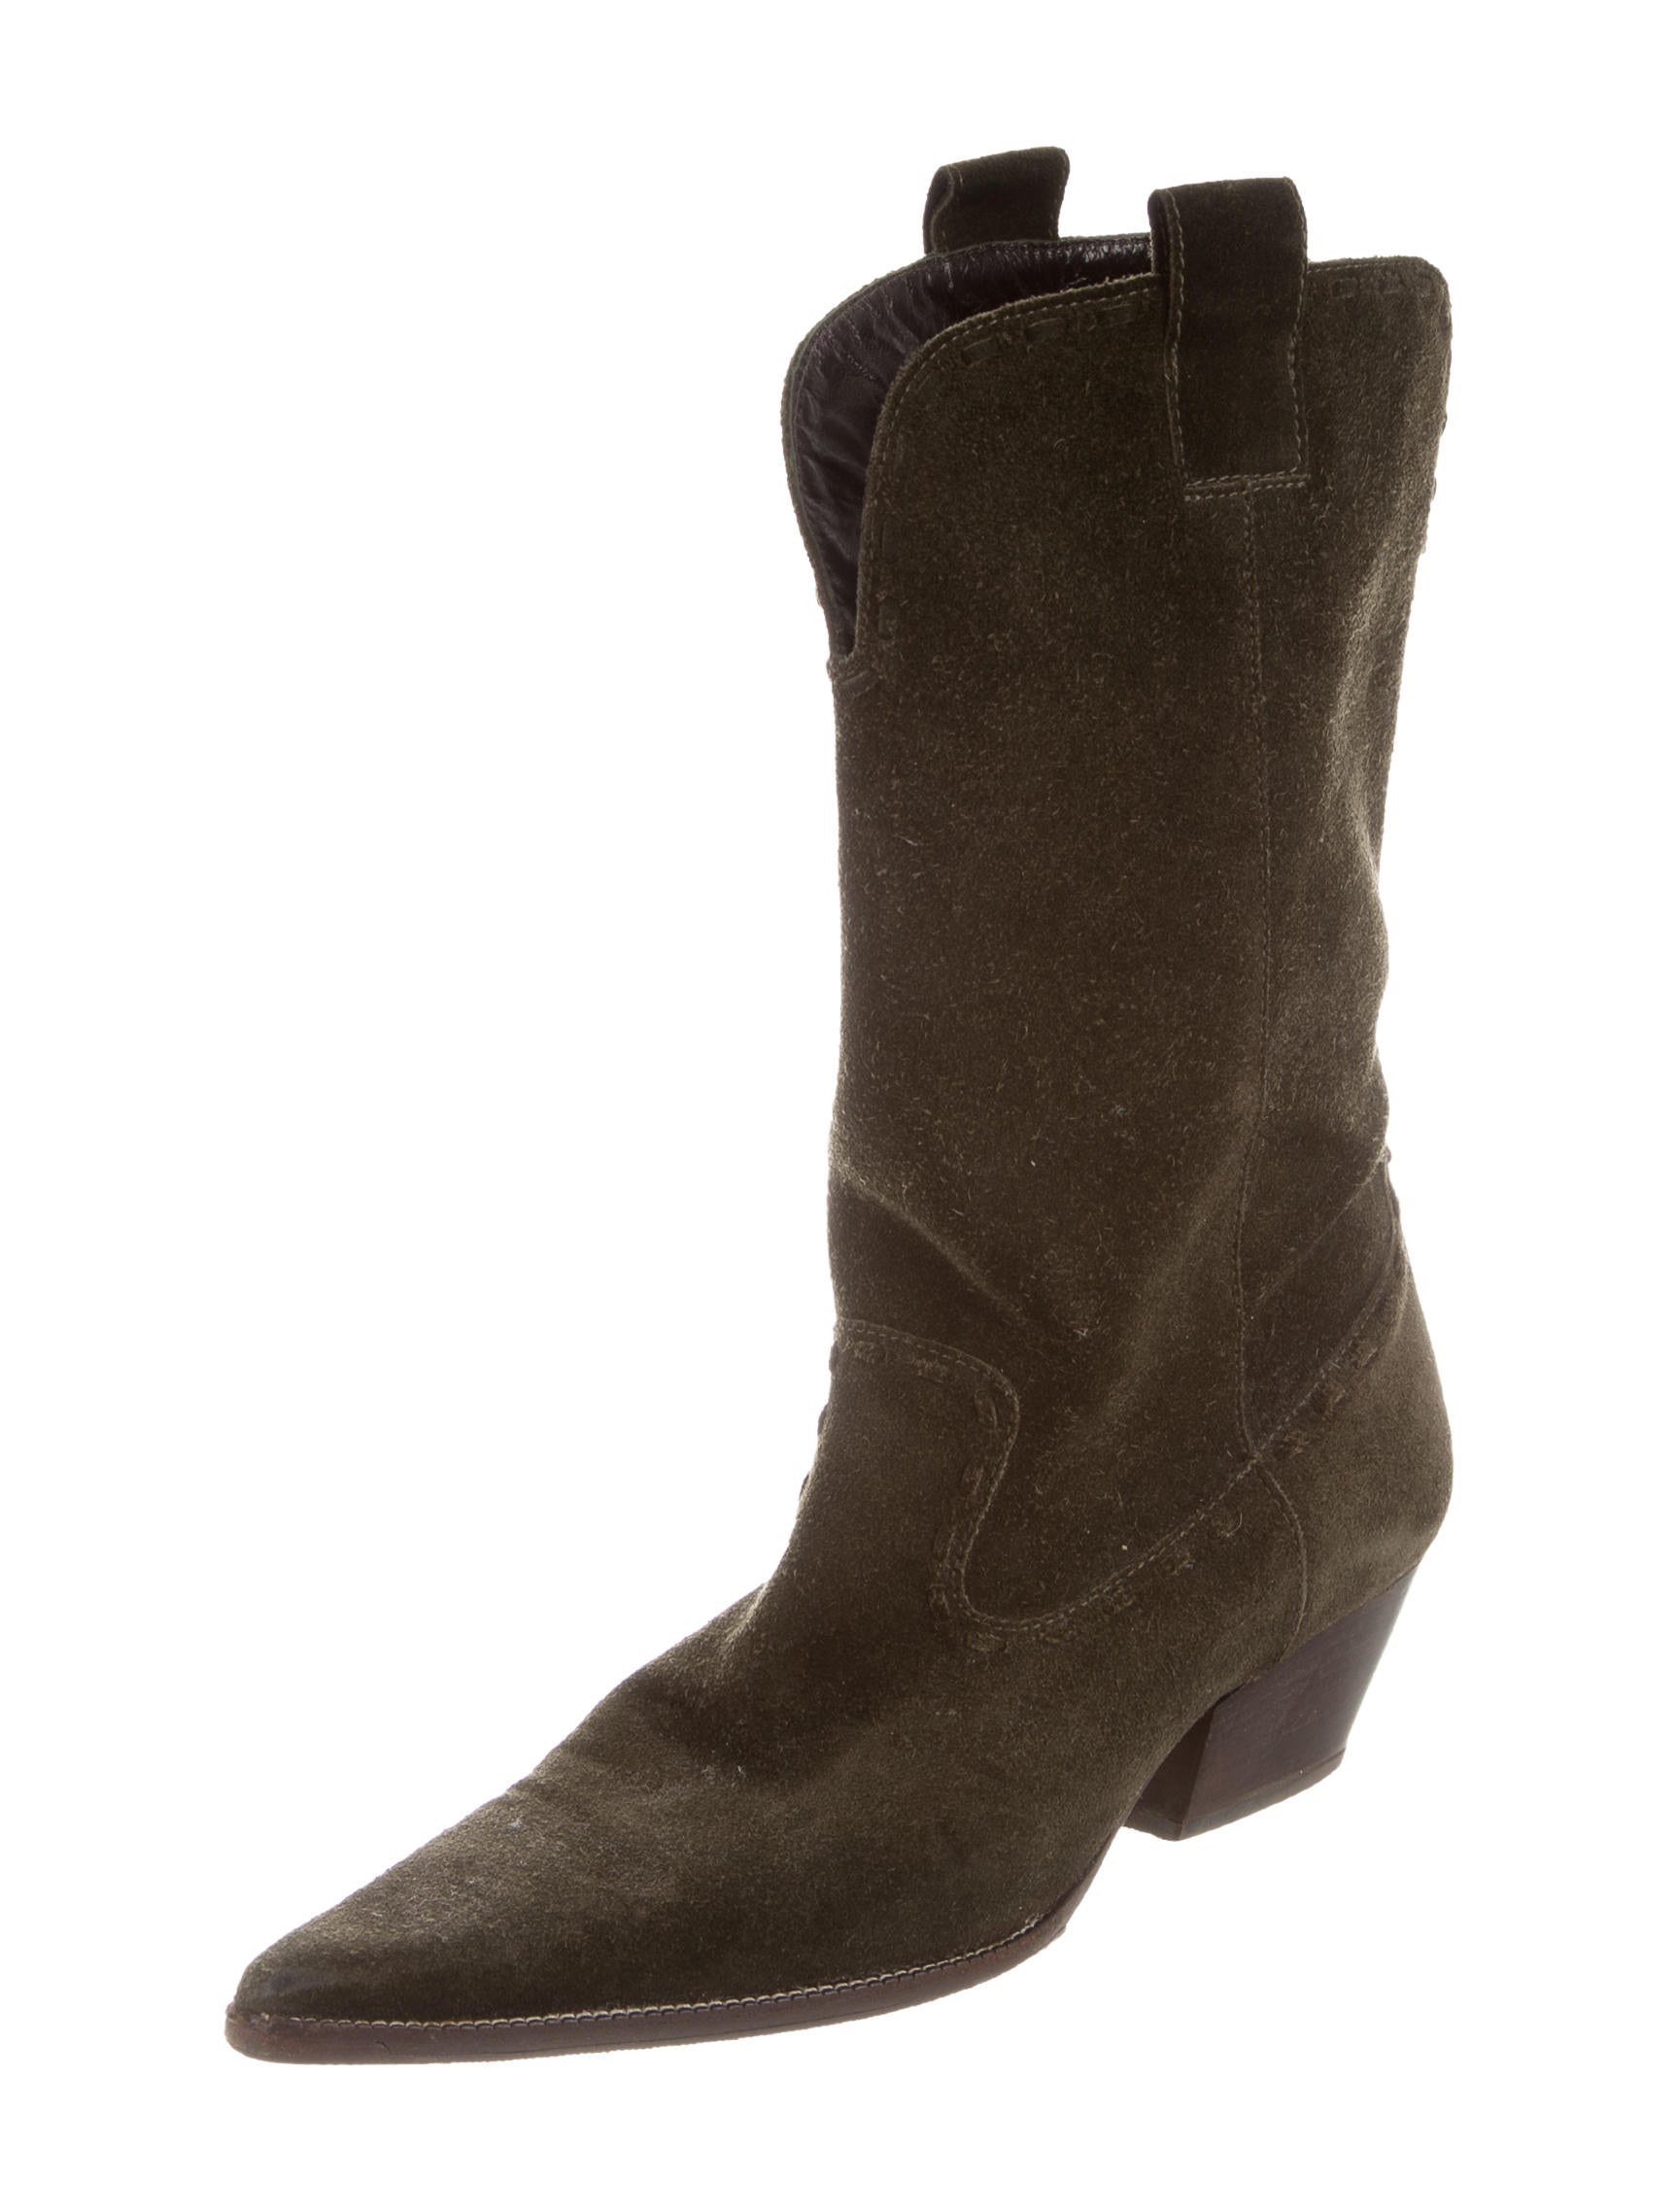 michael kors suede mid calf boots shoes mic55986 the